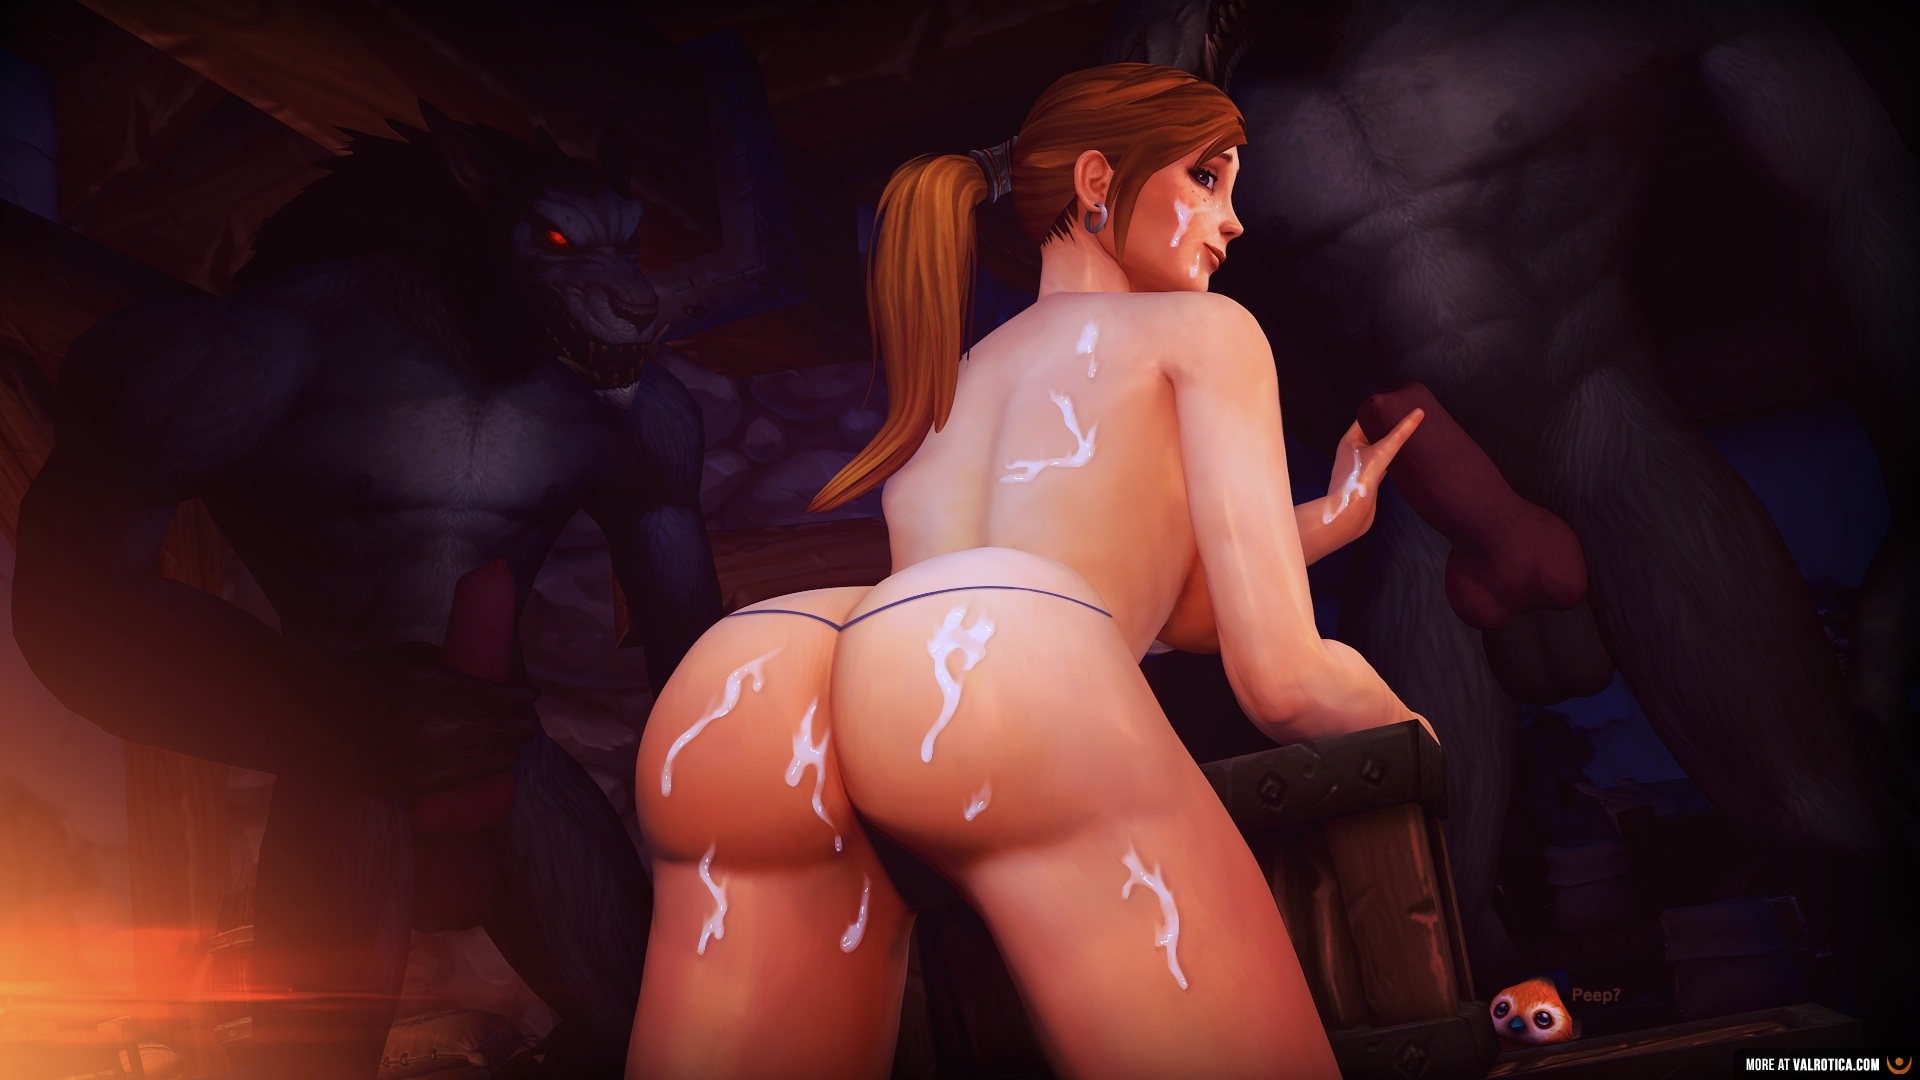 World of warcraft porn download sex pictures